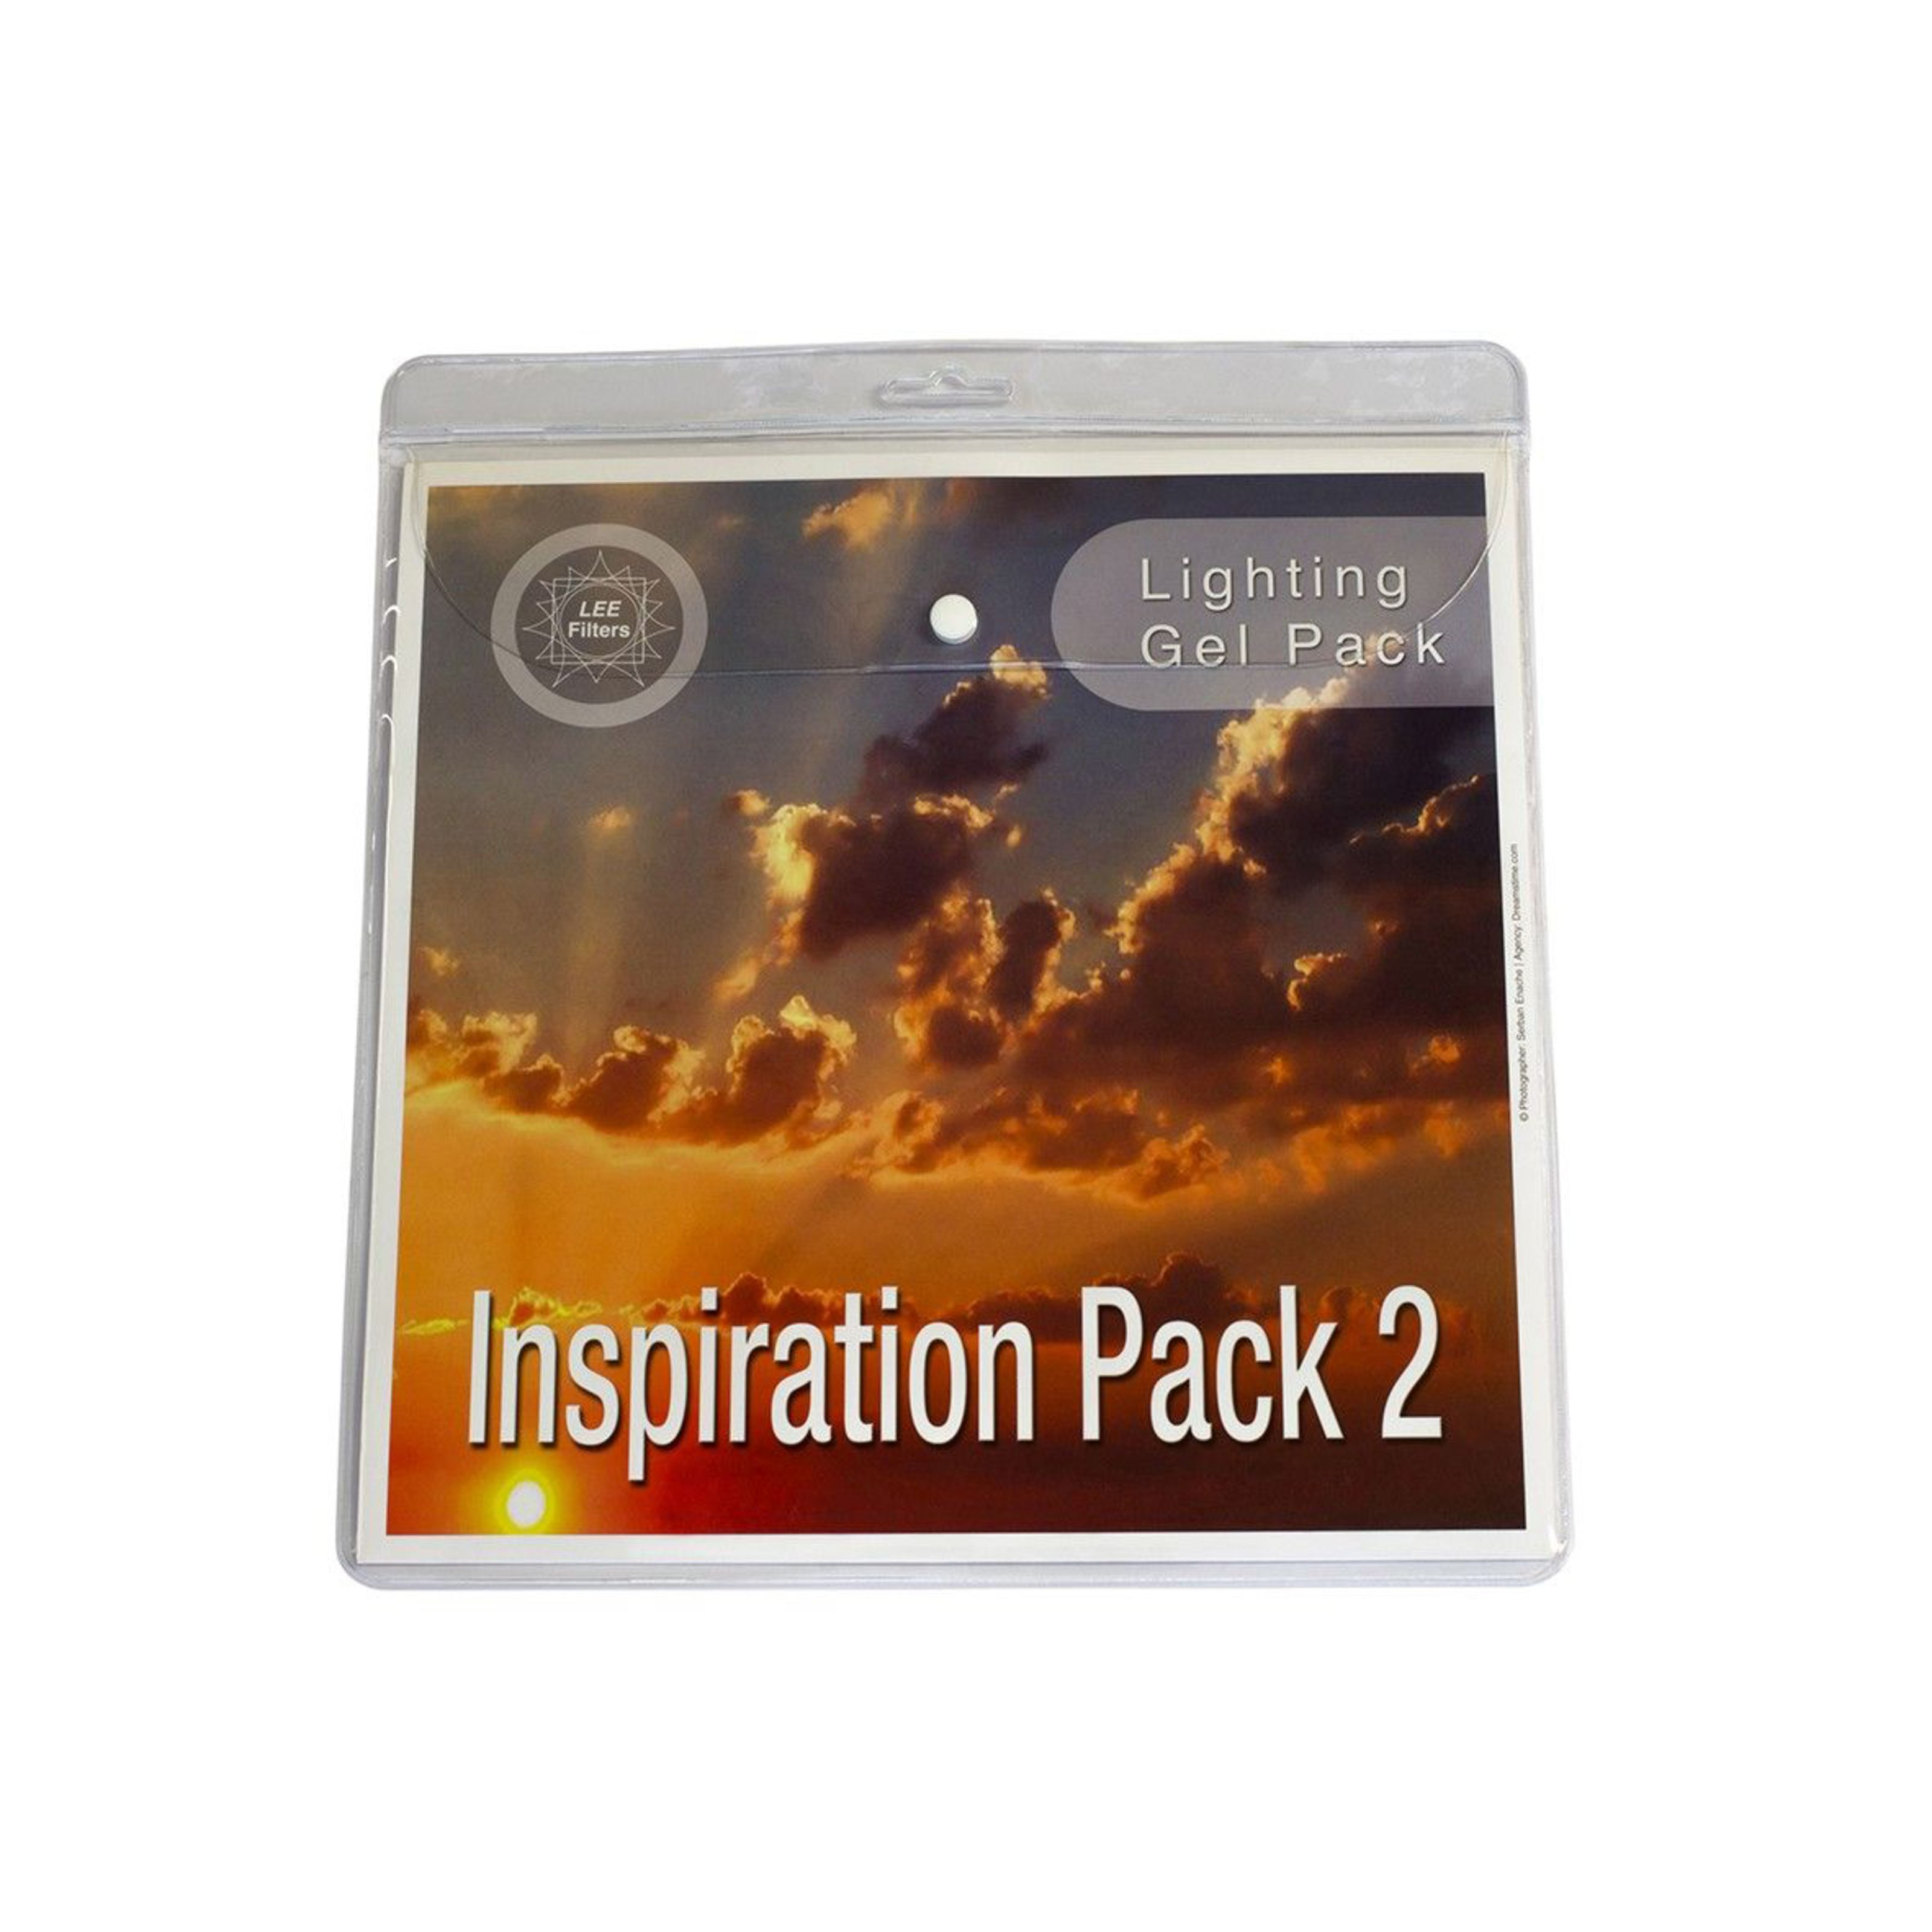 Lee - Inspiration Pack 2